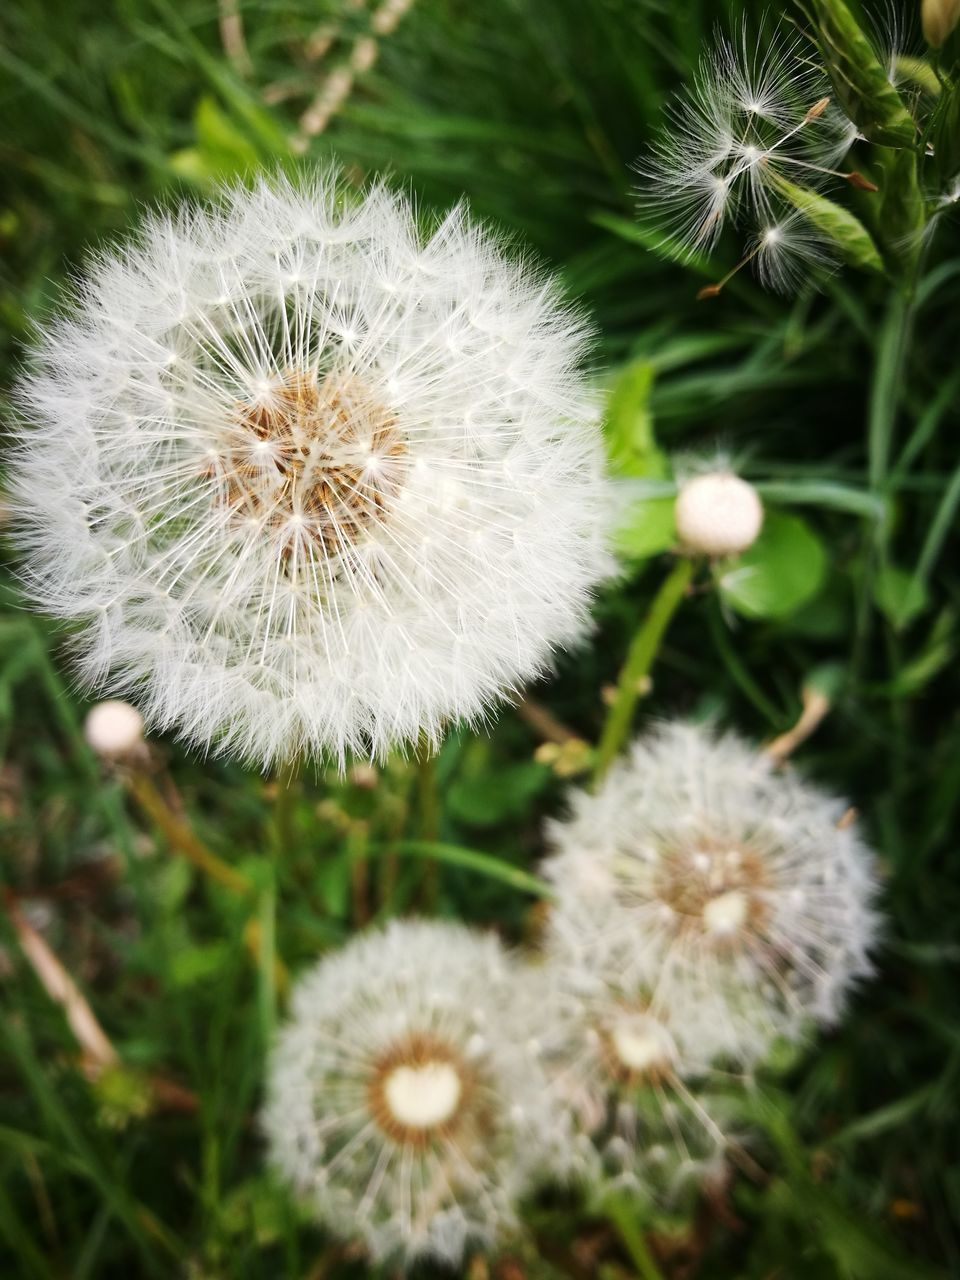 dandelion, flower, nature, growth, dandelion seed, softness, fragility, plant, flower head, uncultivated, white color, wildflower, freshness, delicate, beauty in nature, seed, close-up, no people, outdoors, day